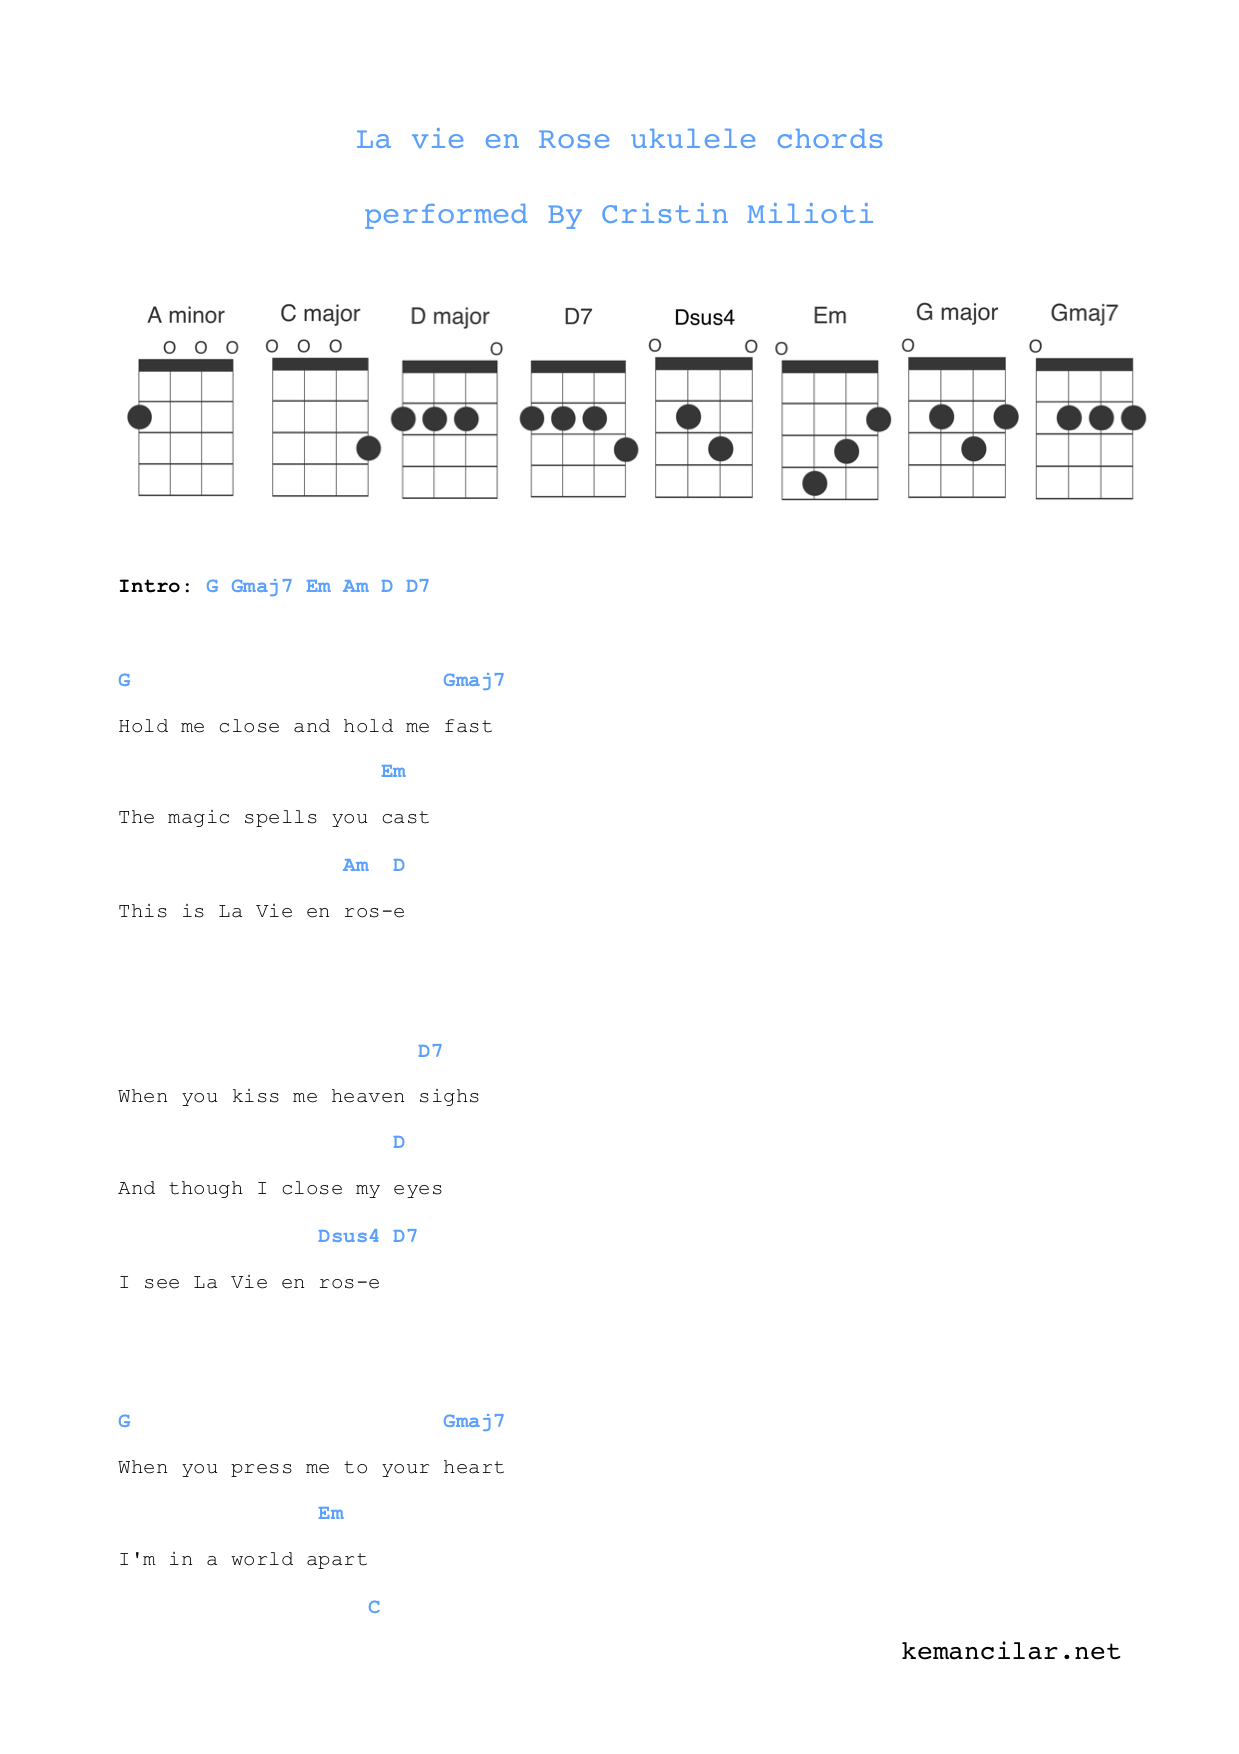 La Vie En Rose Ukulele Chords La Vie En Rose Ukulele Chords Free Sheet Music